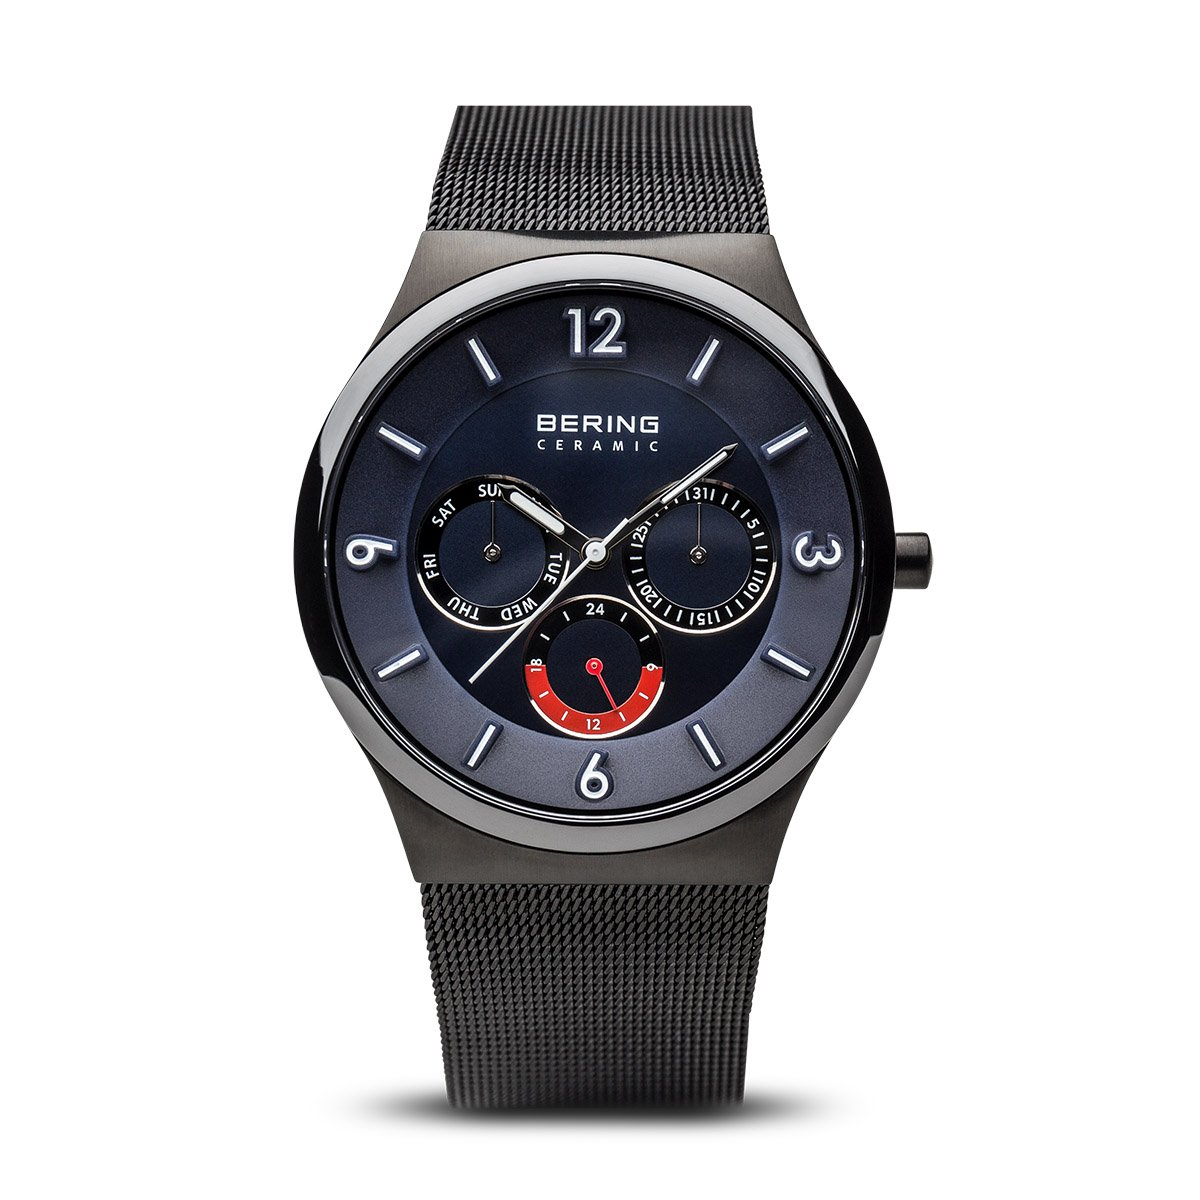 BERING Time 33440-227 Mens Ceramic Collection Watch with Mesh Band and scratch resistant sapphire crystal. Designed in Denmark.